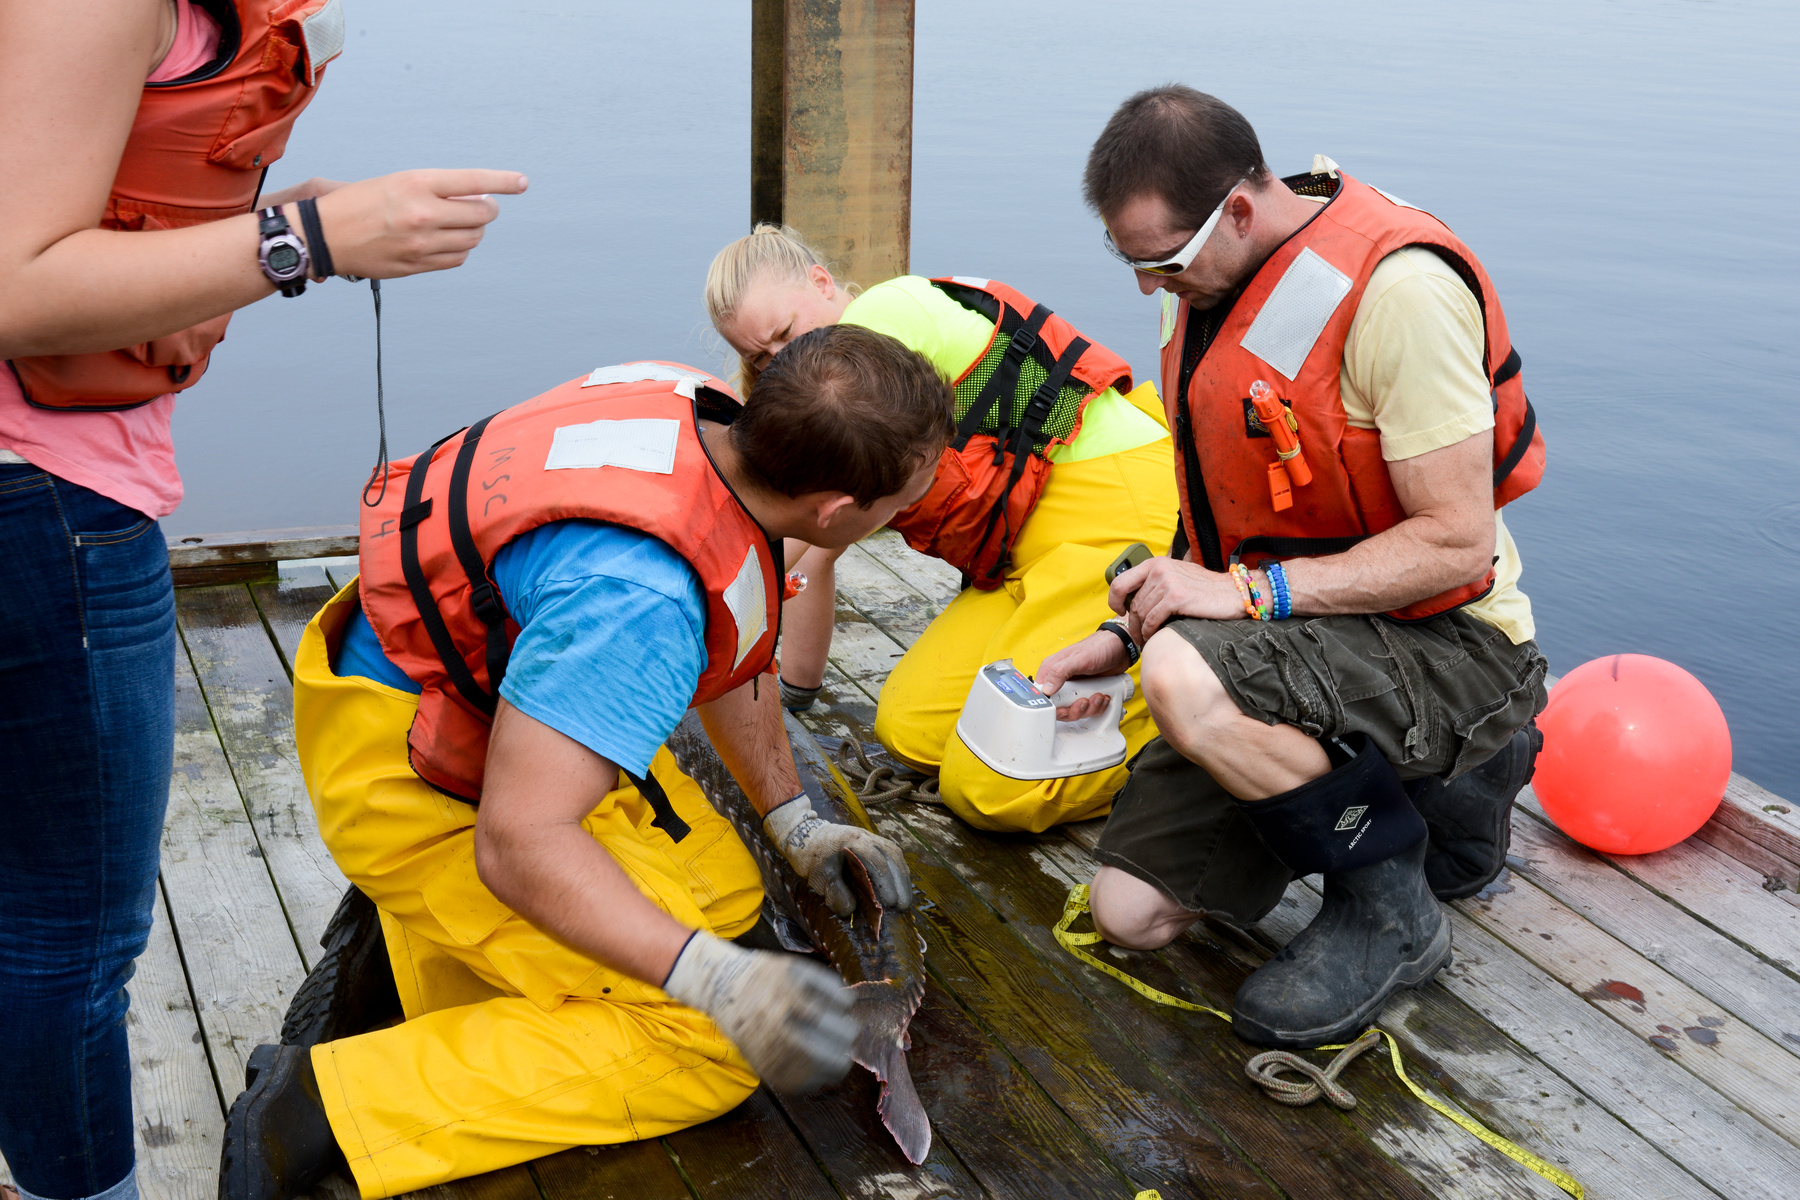 Sturgeon research with Dr. Sulikowski